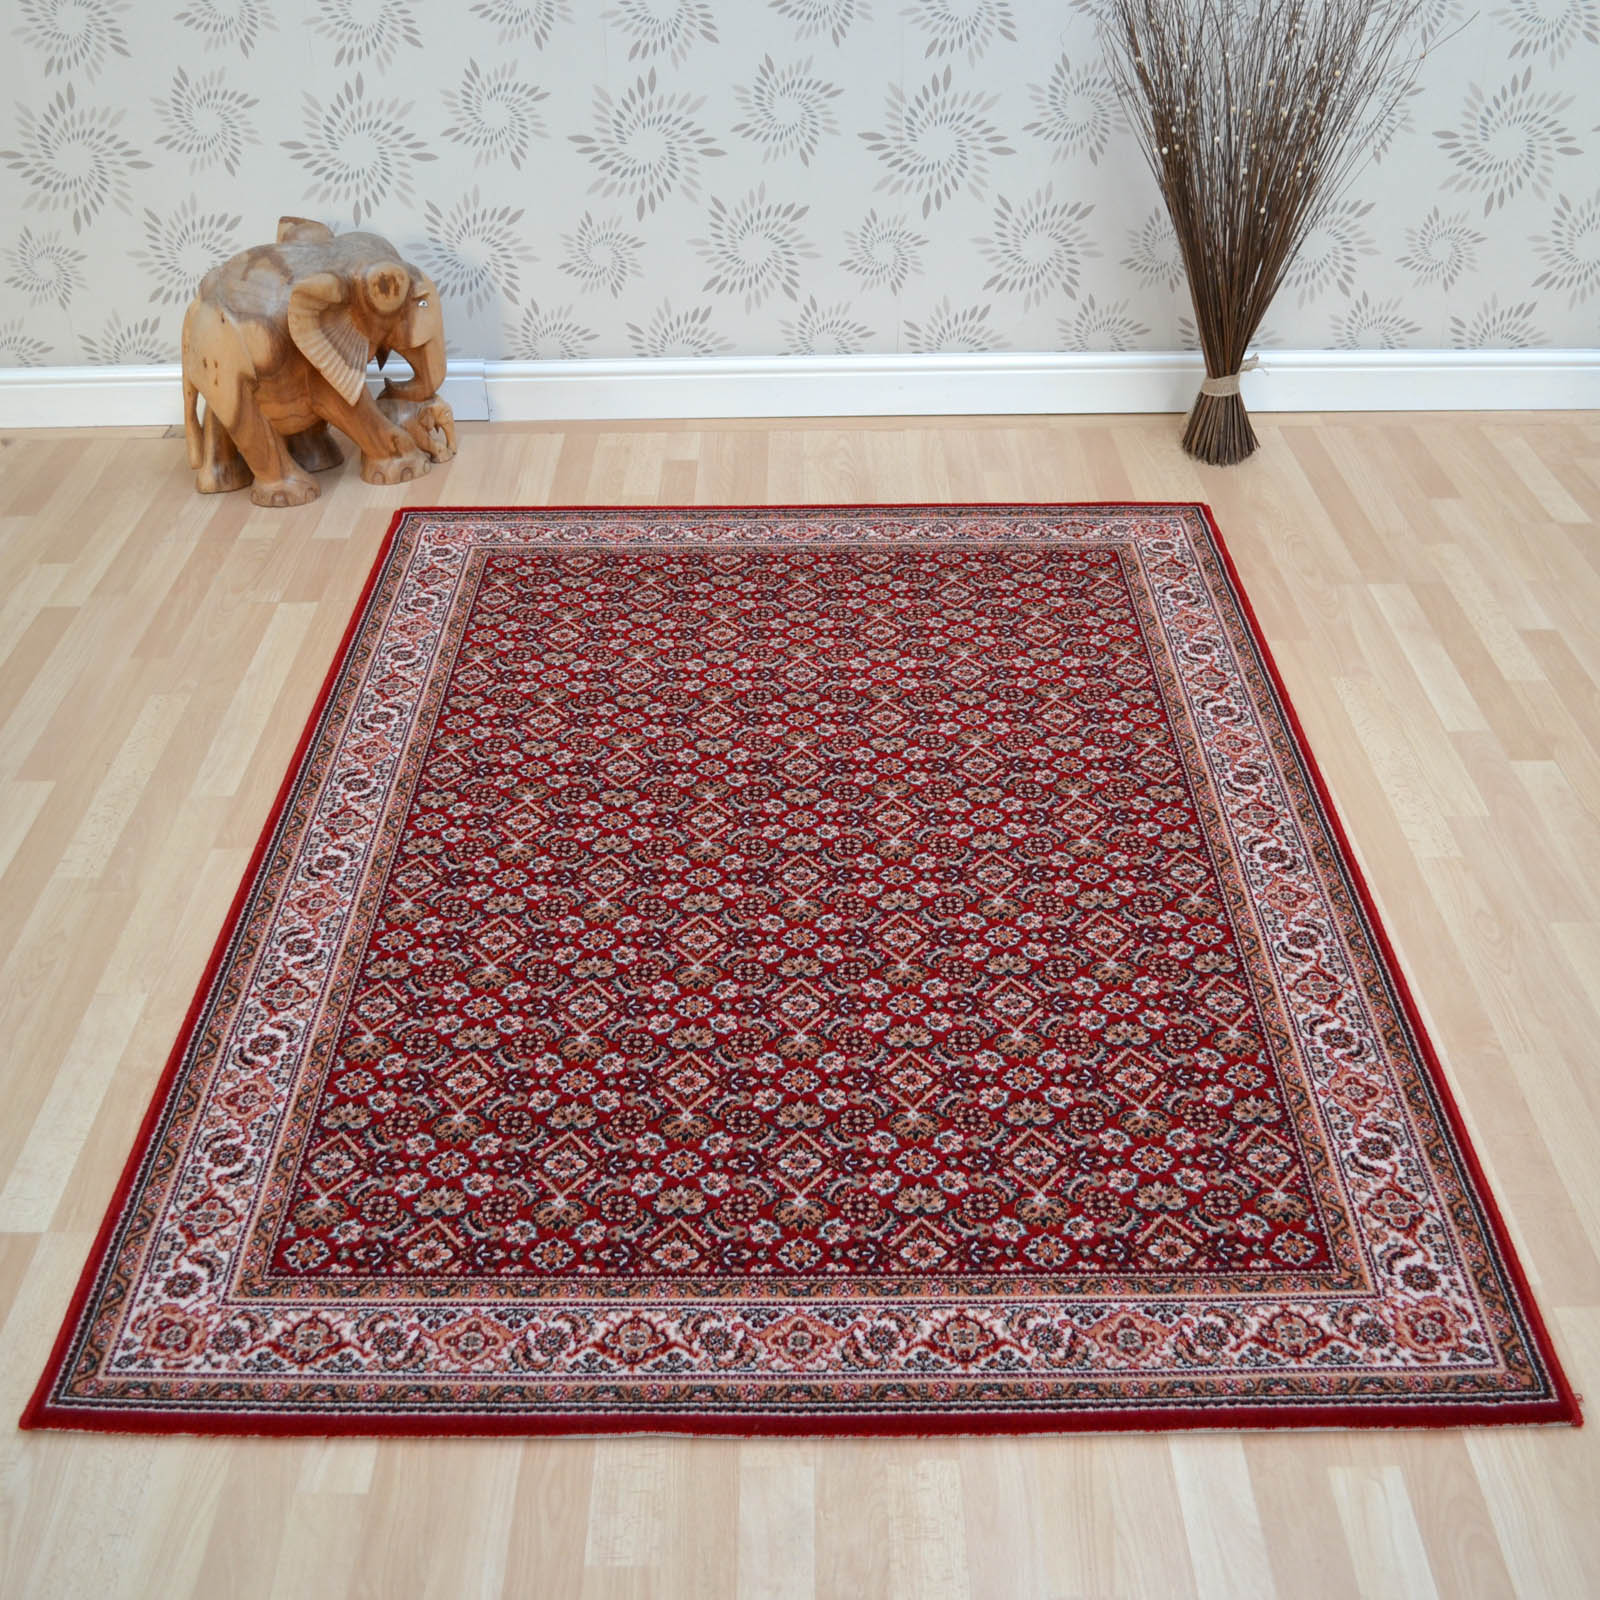 Lano Imperial Rugs 1956 677 Red